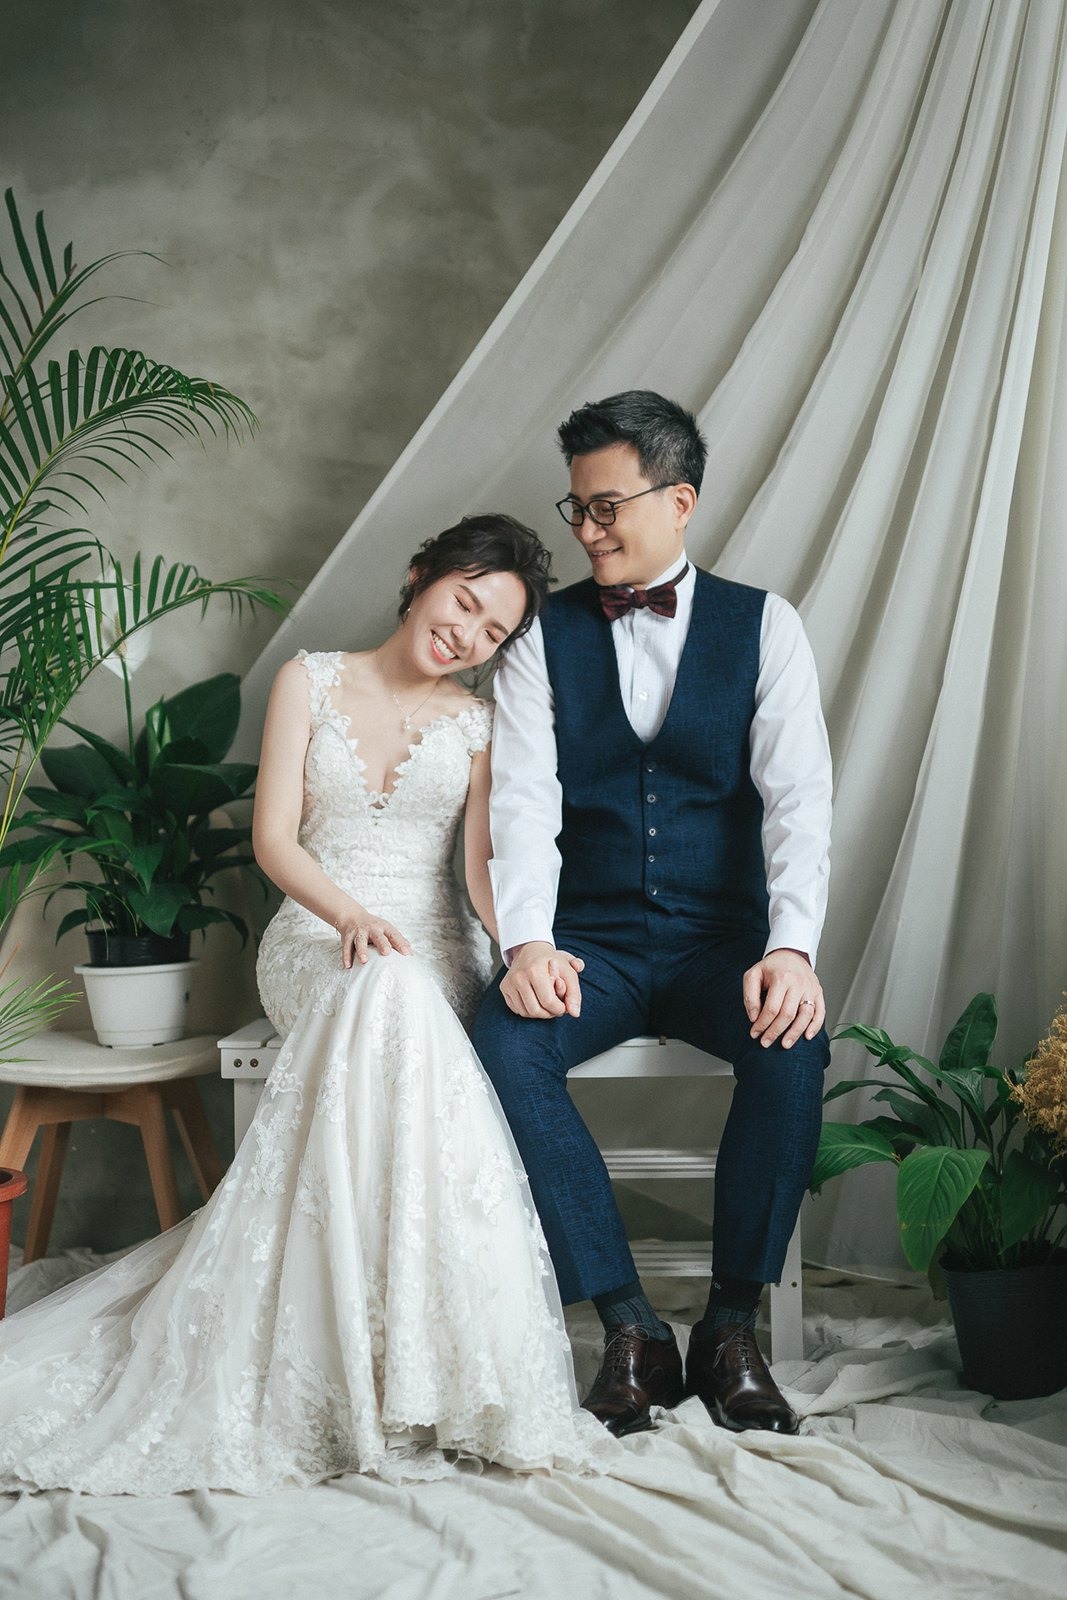 【婚紗】Ou & Zhen / 婚紗意象 / 淡水沙崙 / EASTERN WEDDING Studio